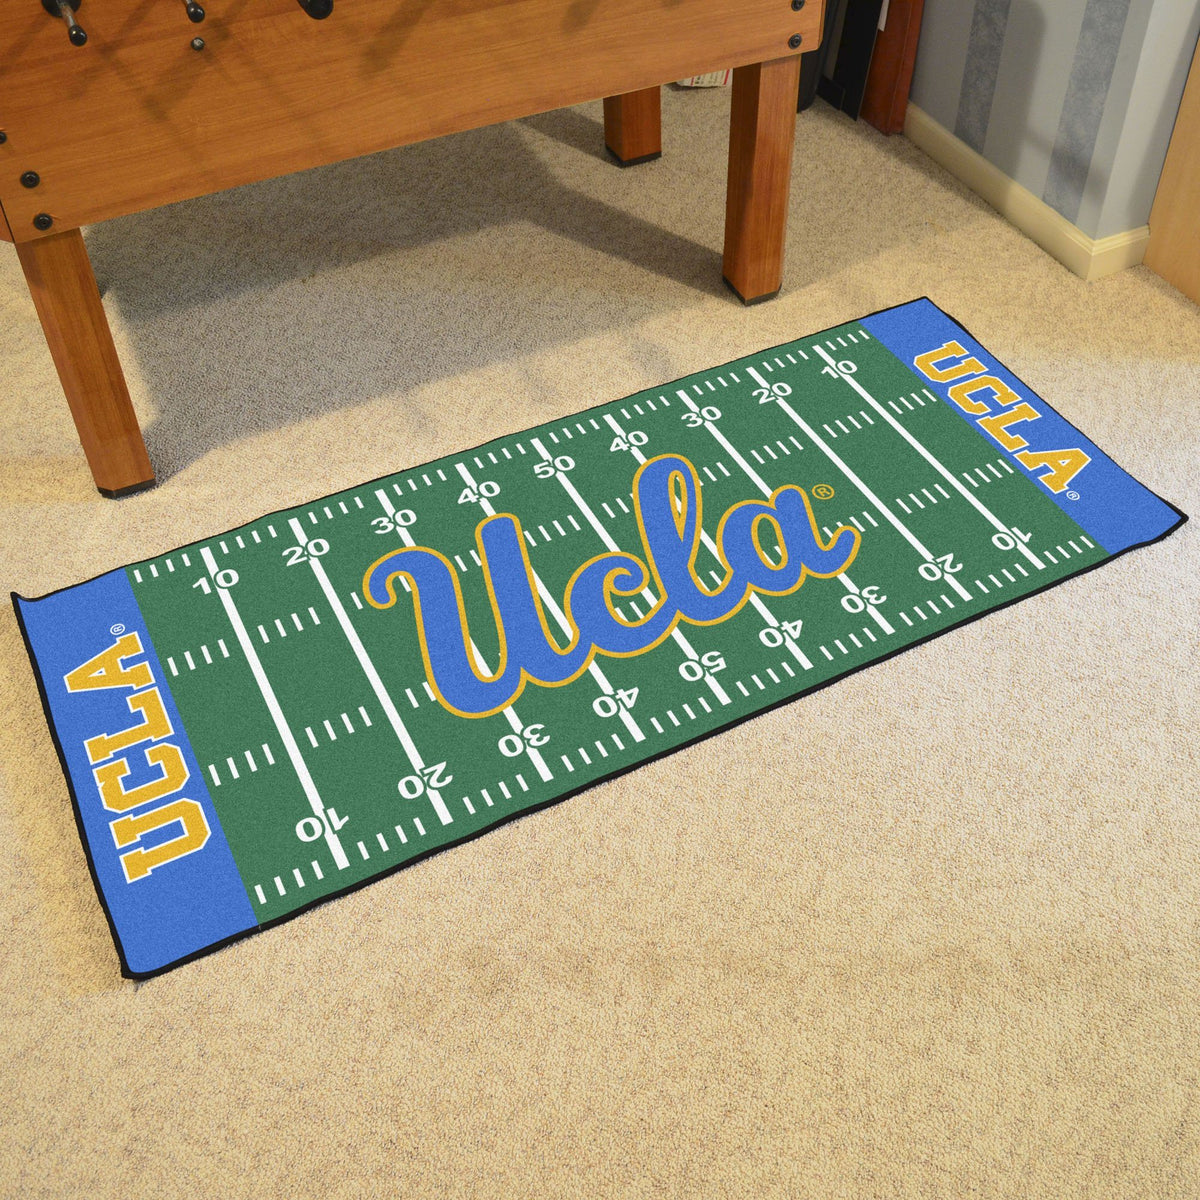 Collegiate - Football Field Runner Collegiate Mats, Rectangular Mats, Football Field Runner, Collegiate, Home Fan Mats UCLA